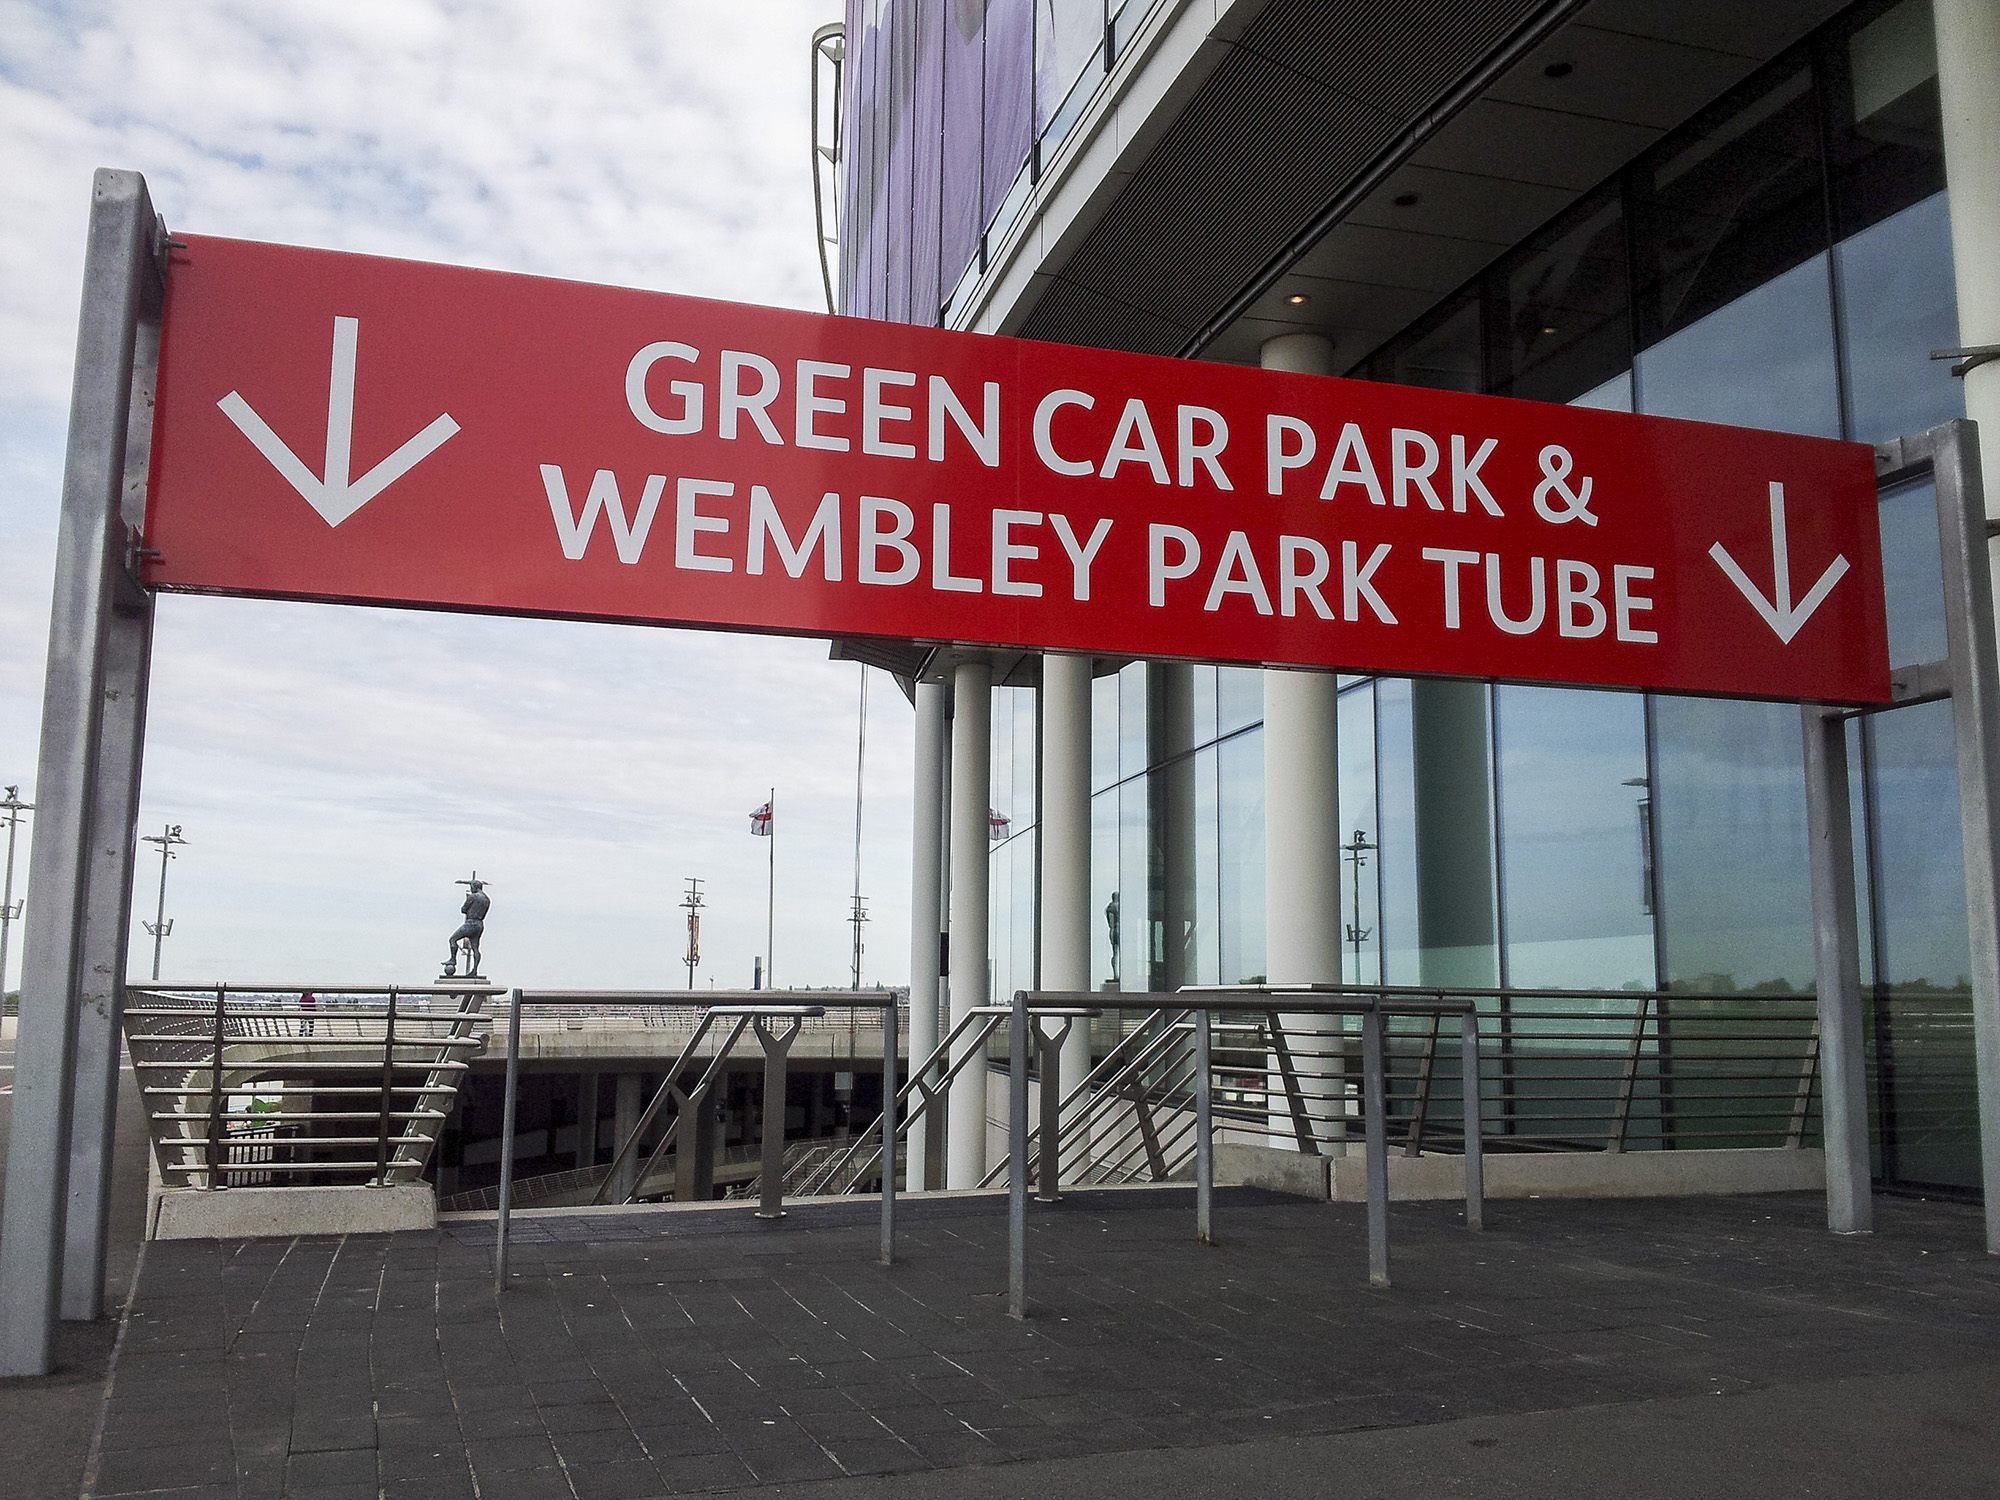 WNSL Wembley - series of overhead waymarking gantries